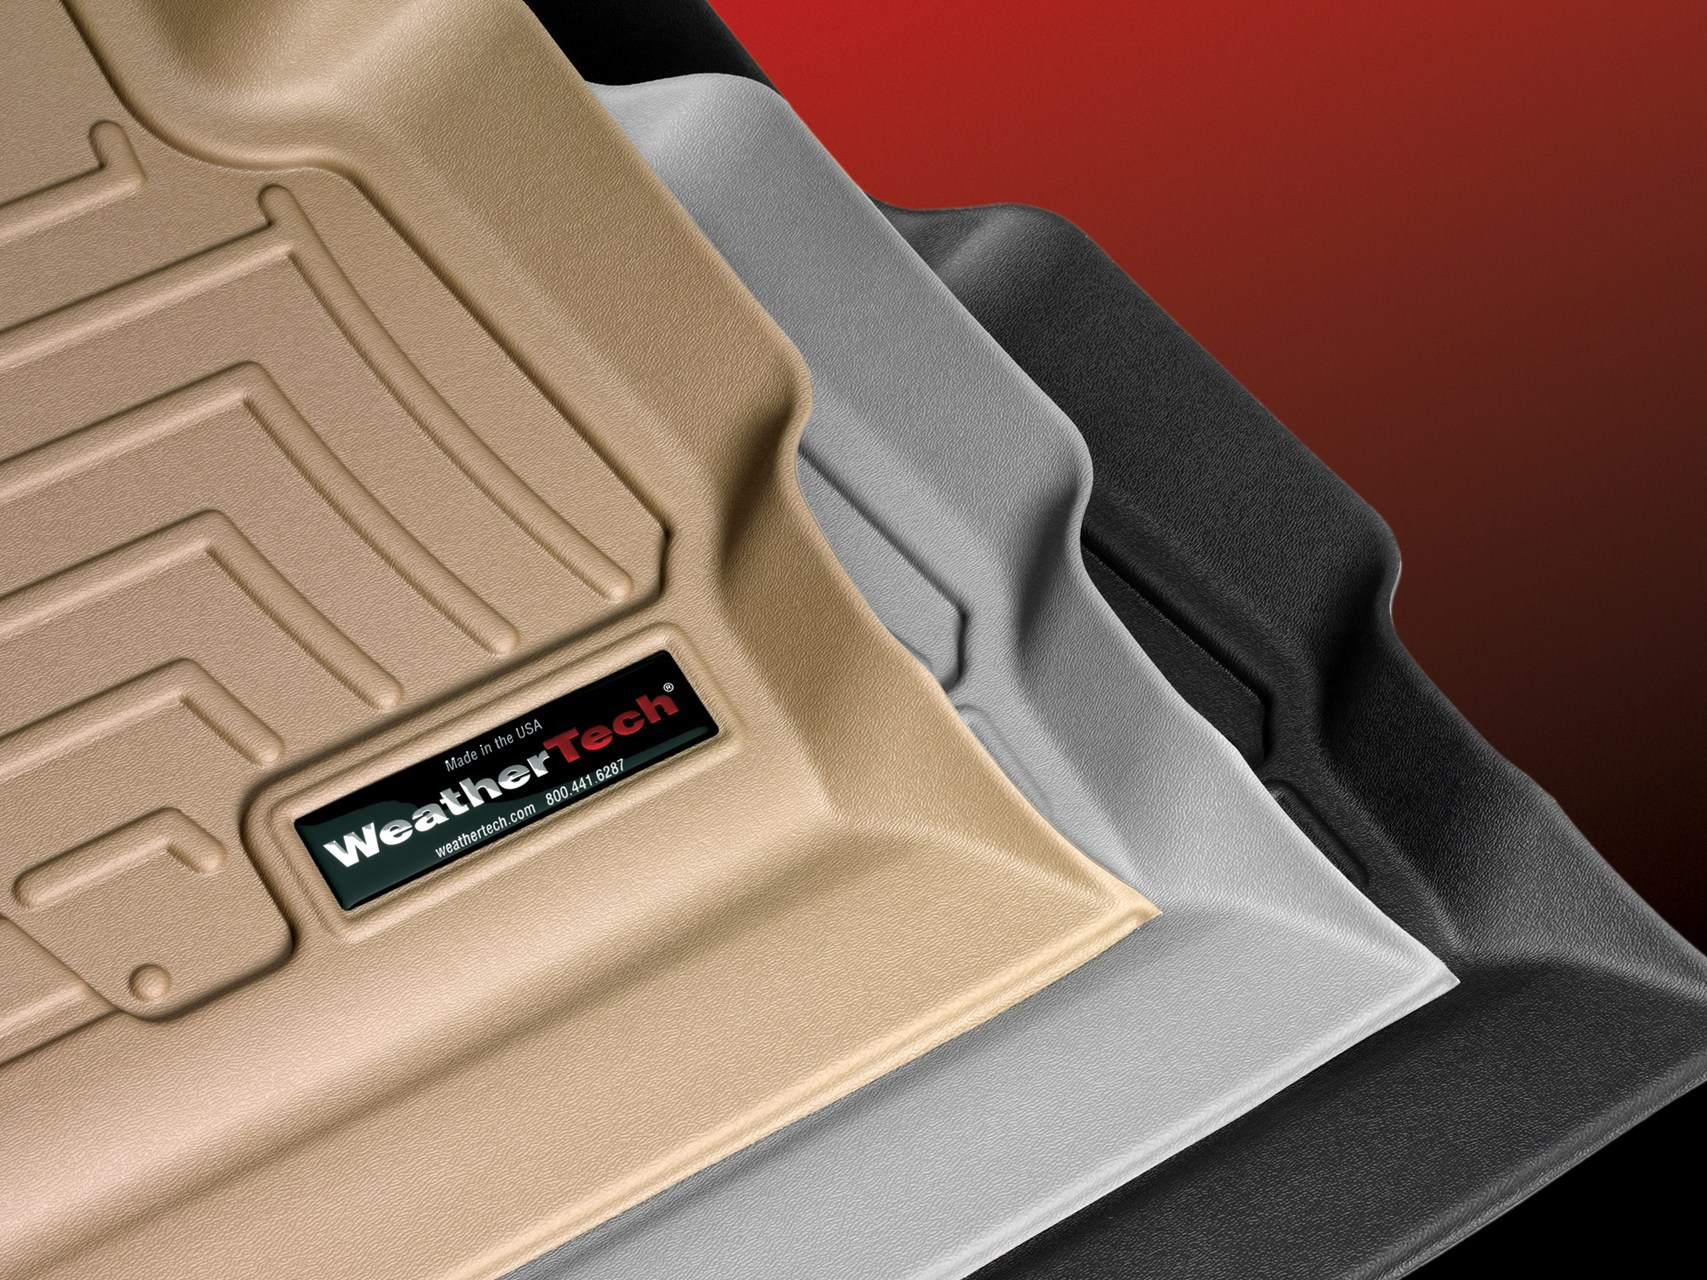 Image of WeatherTech Floor liners, tan, grey, black